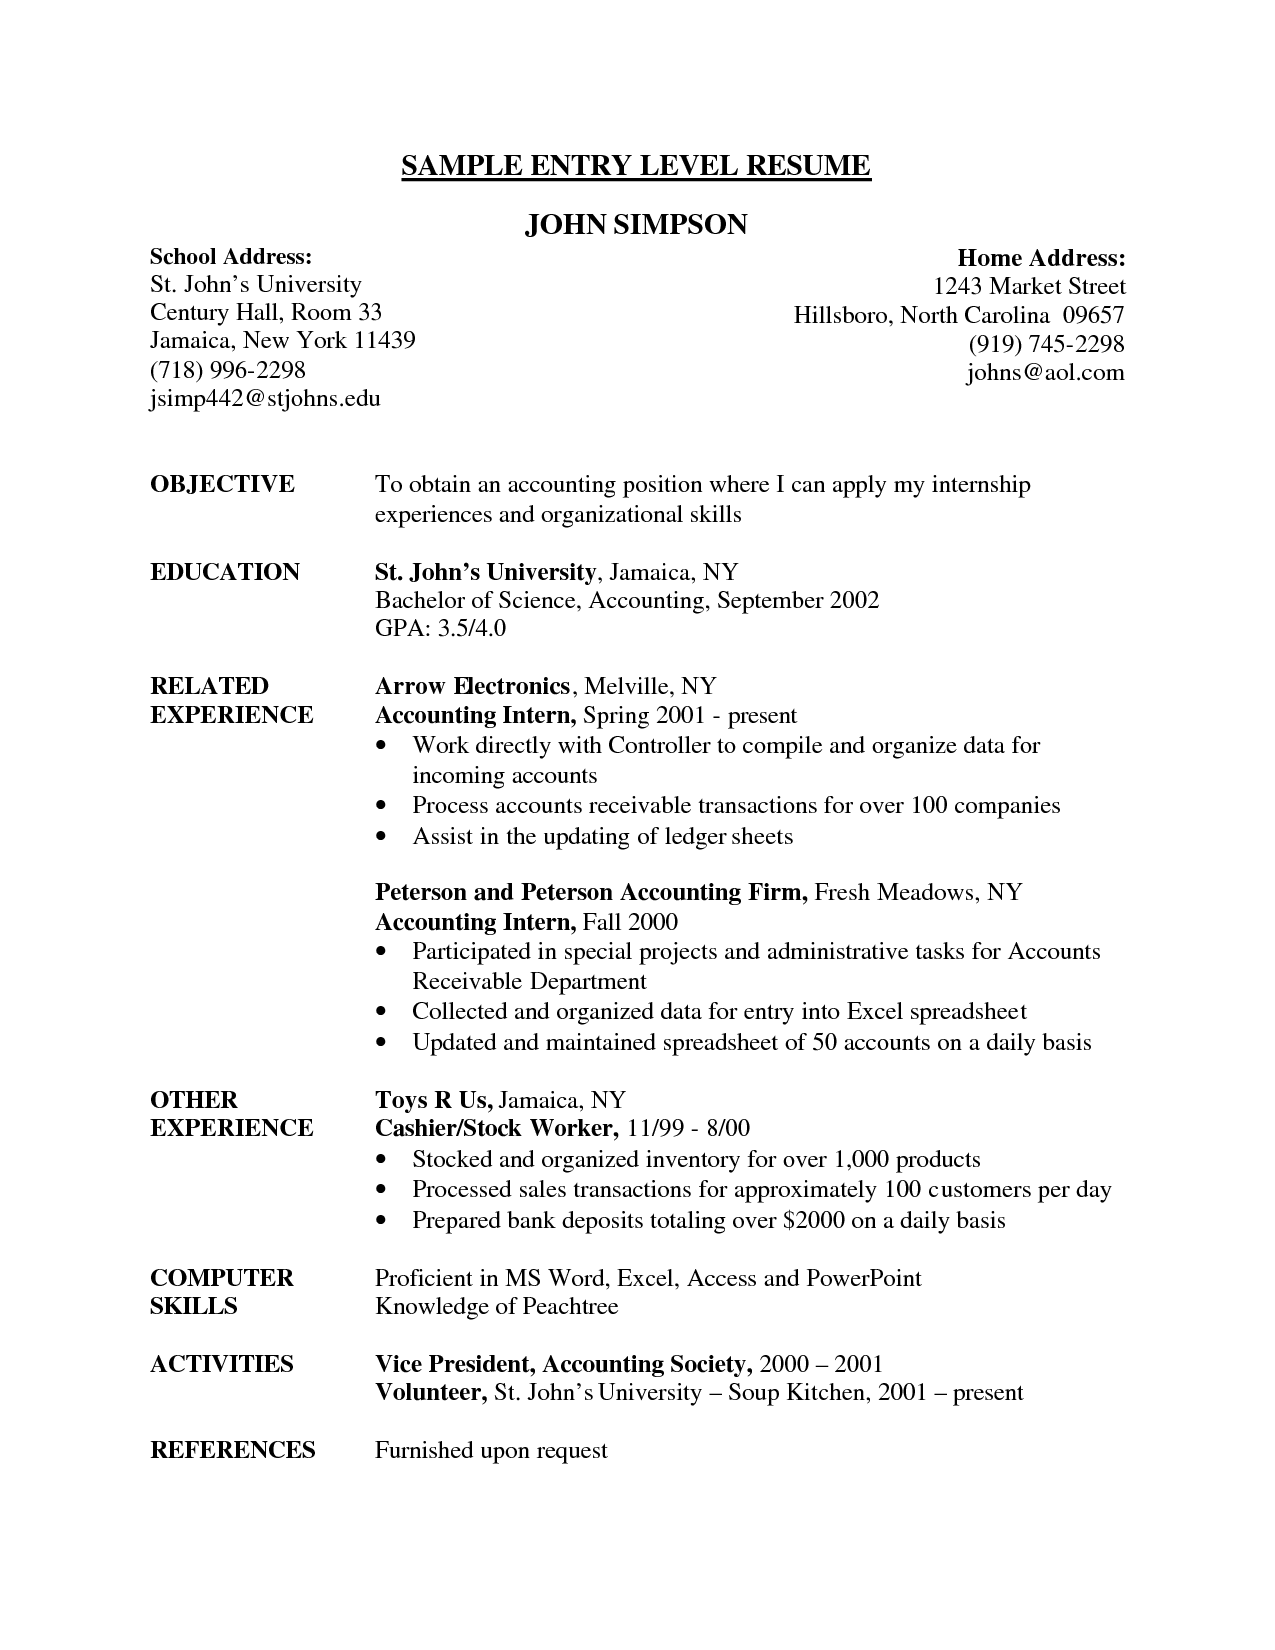 example of resume profile entry level httpwwwresumecareerinfo - Entry Level Resume Examples